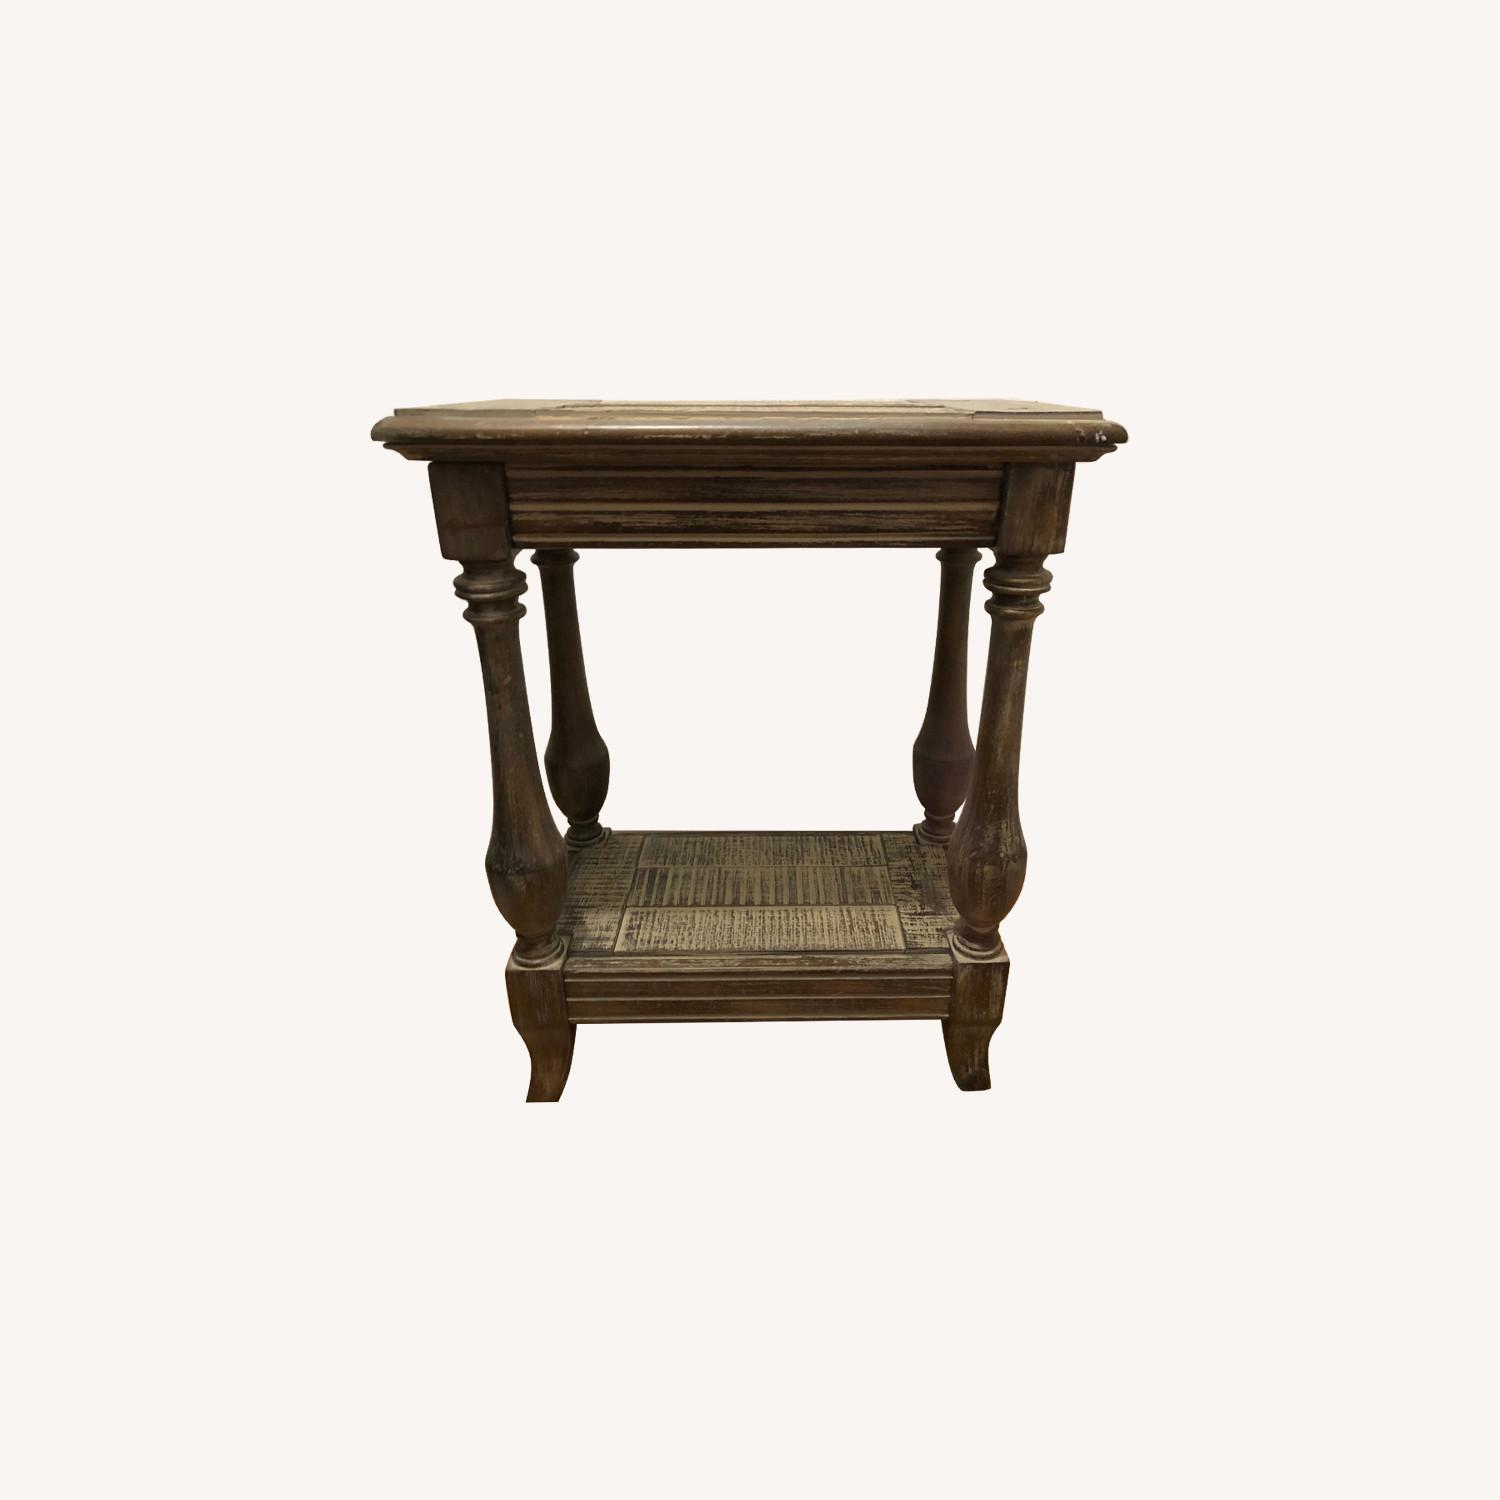 Solid Wood Distressed Finish Side-Table